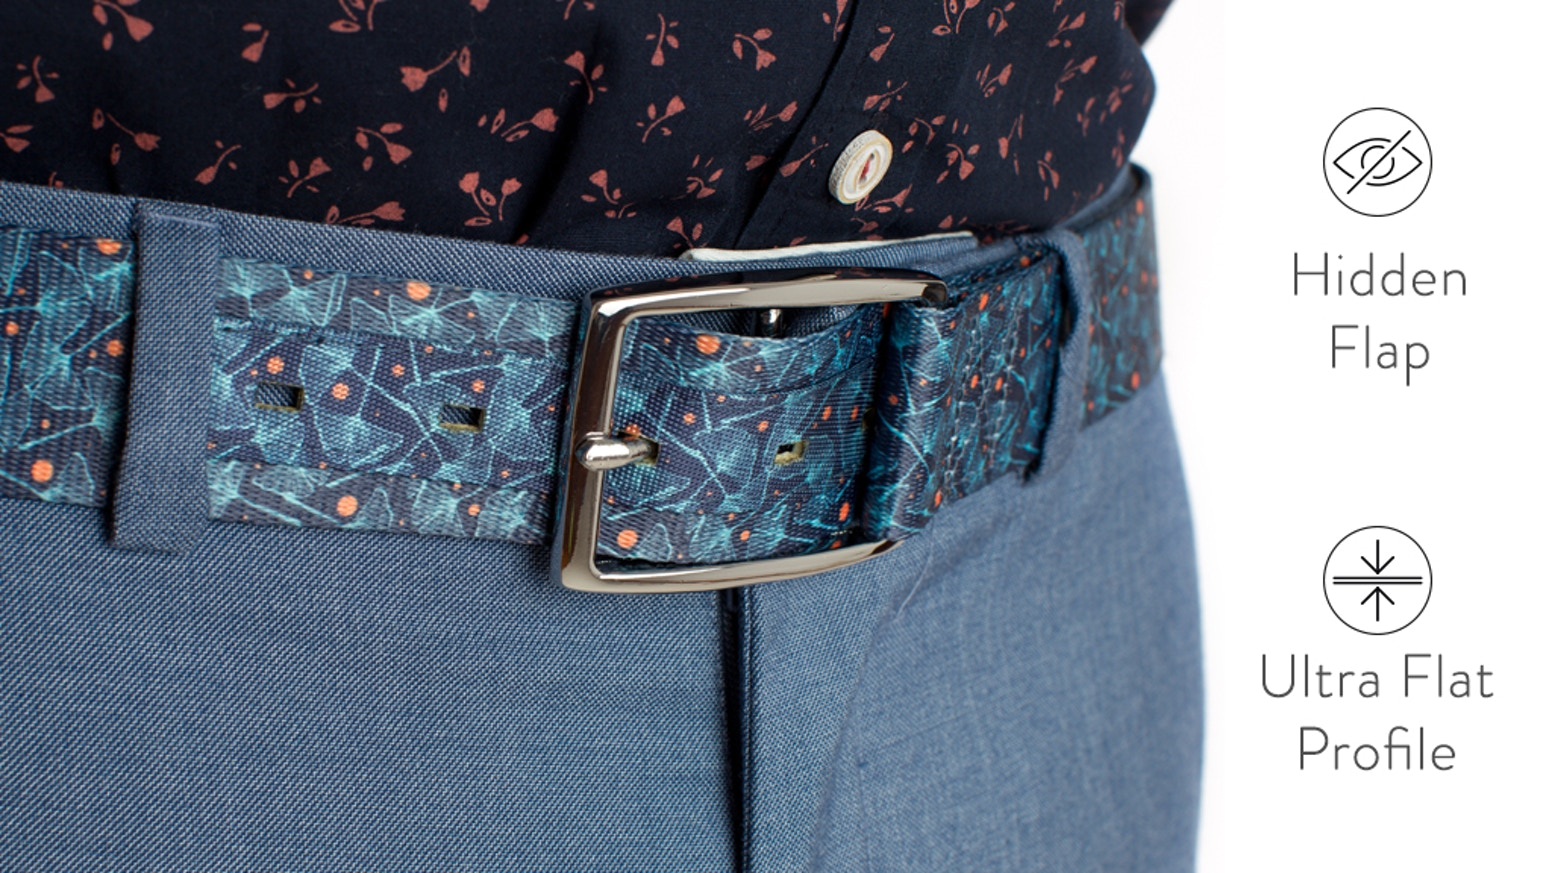 On a mission to re-invent the belt, the way it should have been invented in the first place, with the flap hidden behind the belt.